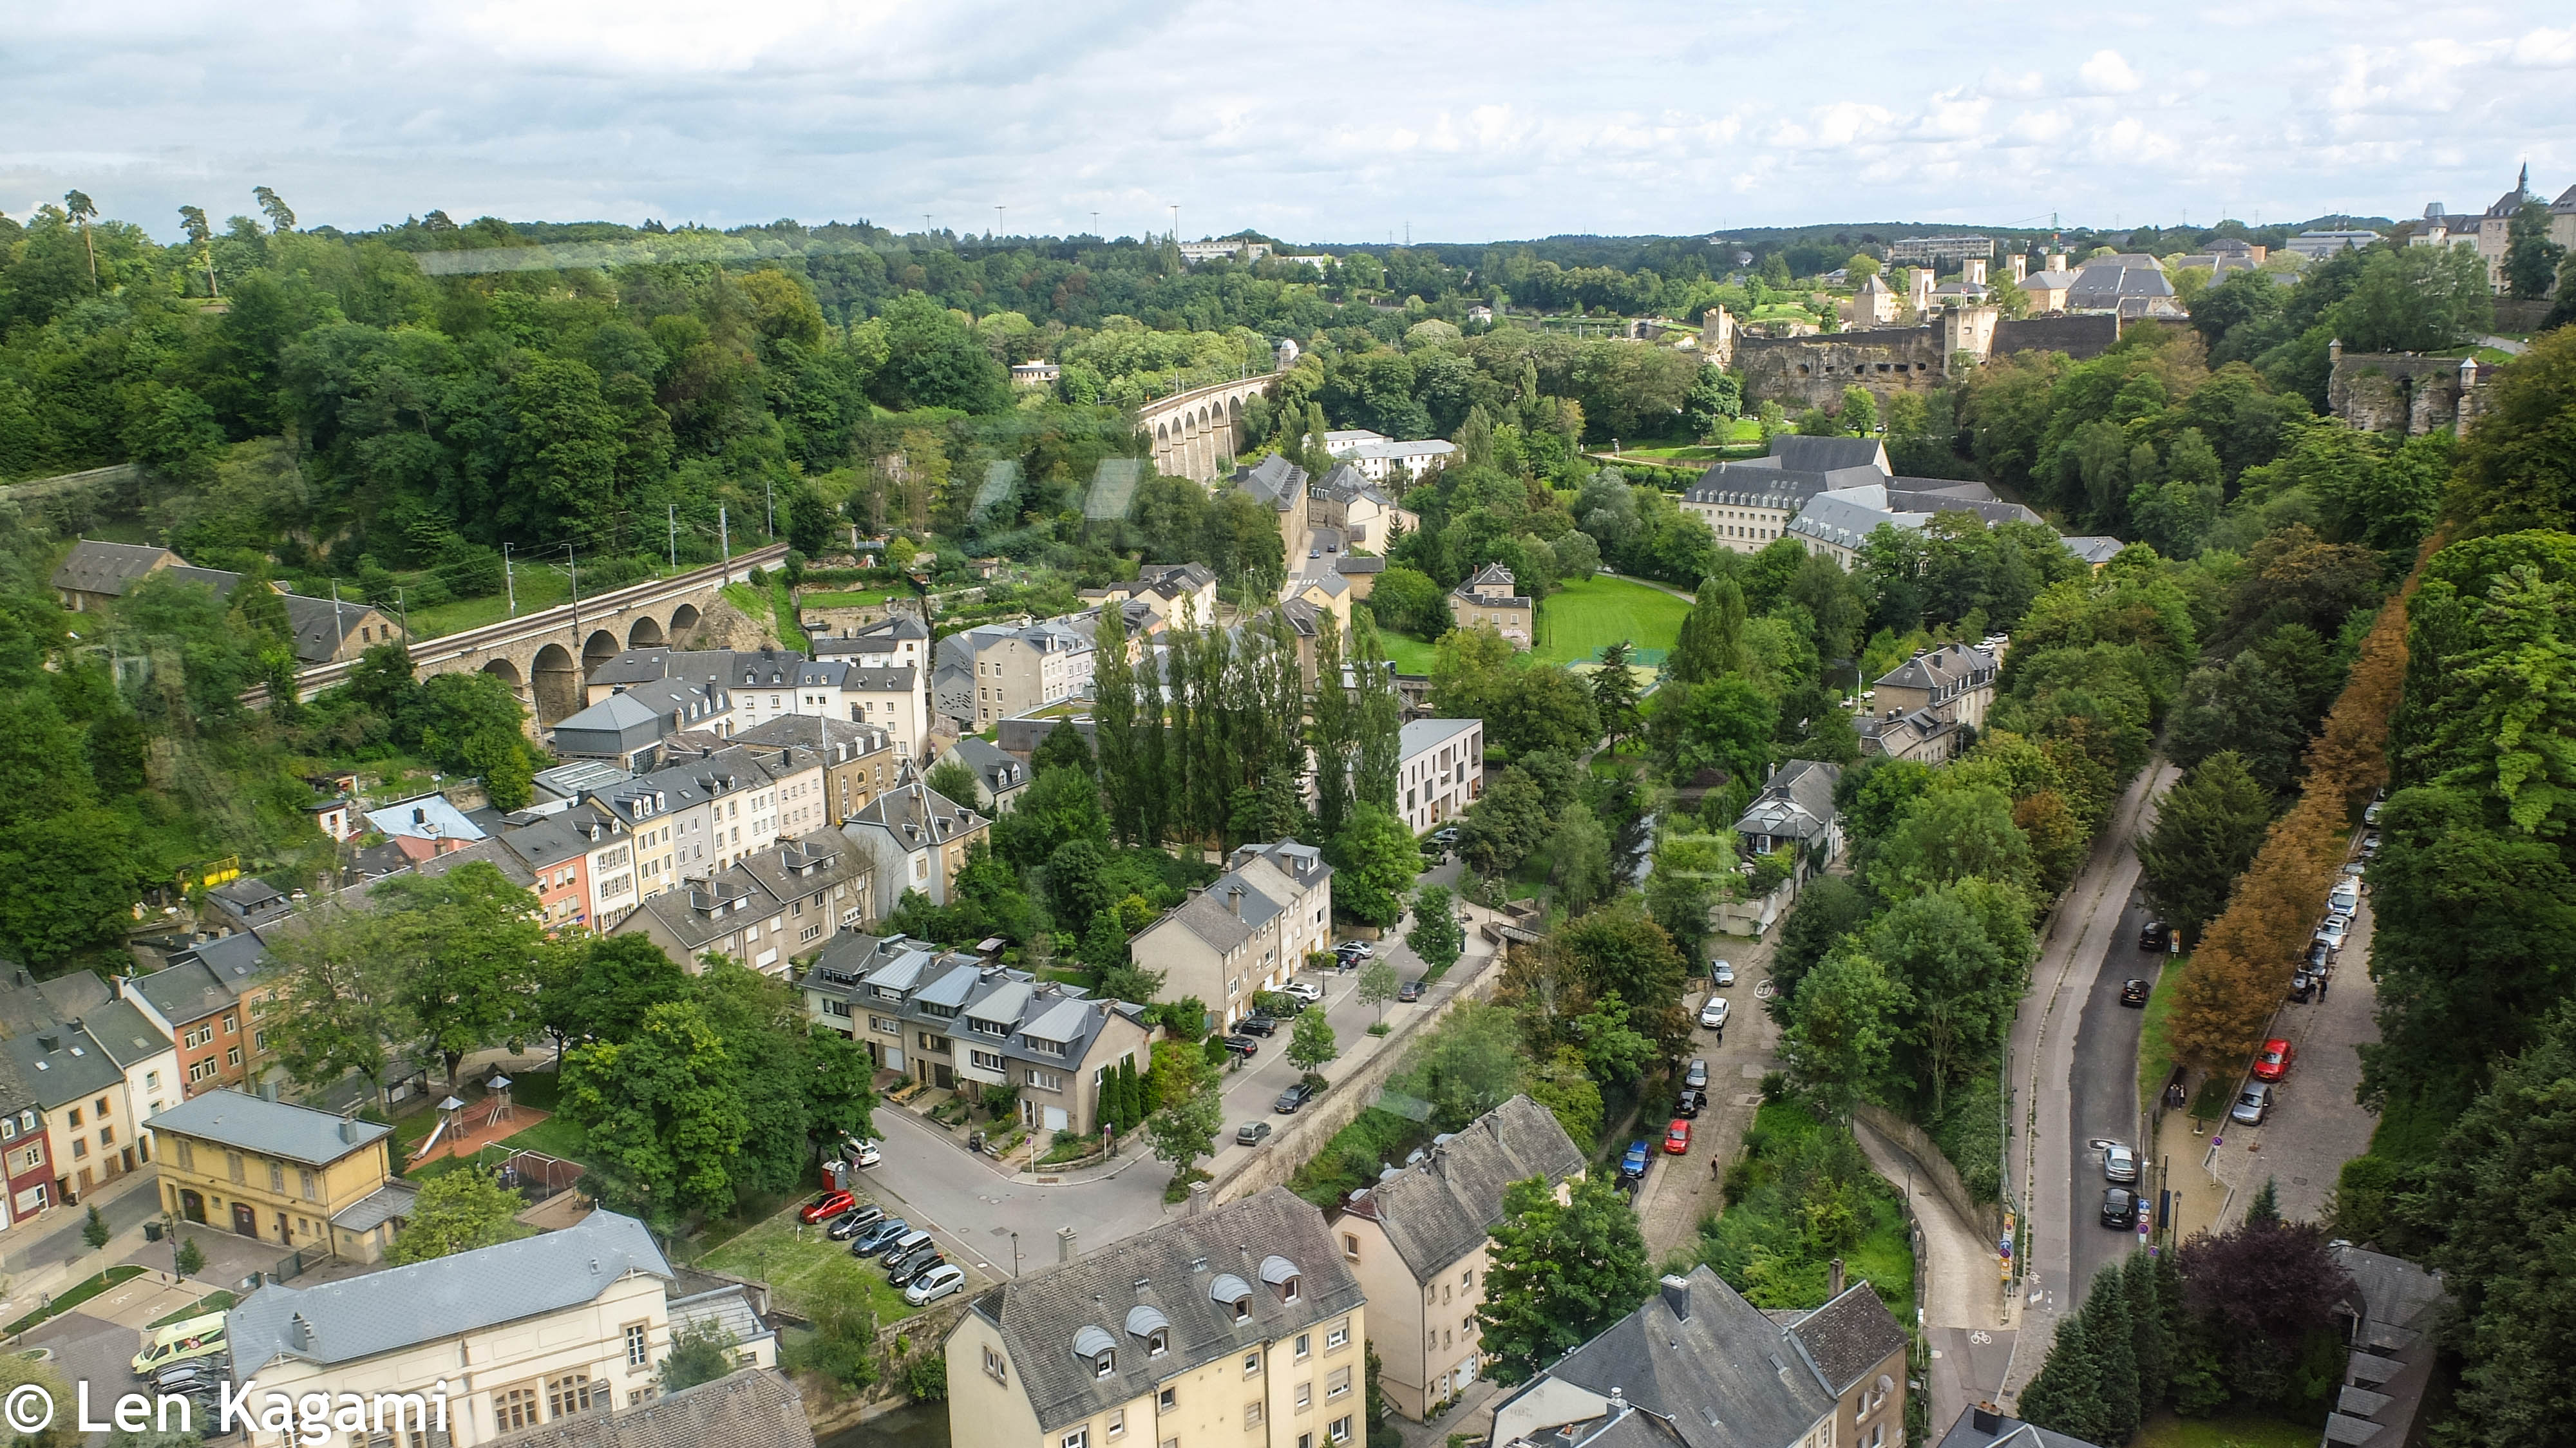 Luxembourg City - The Green Capital